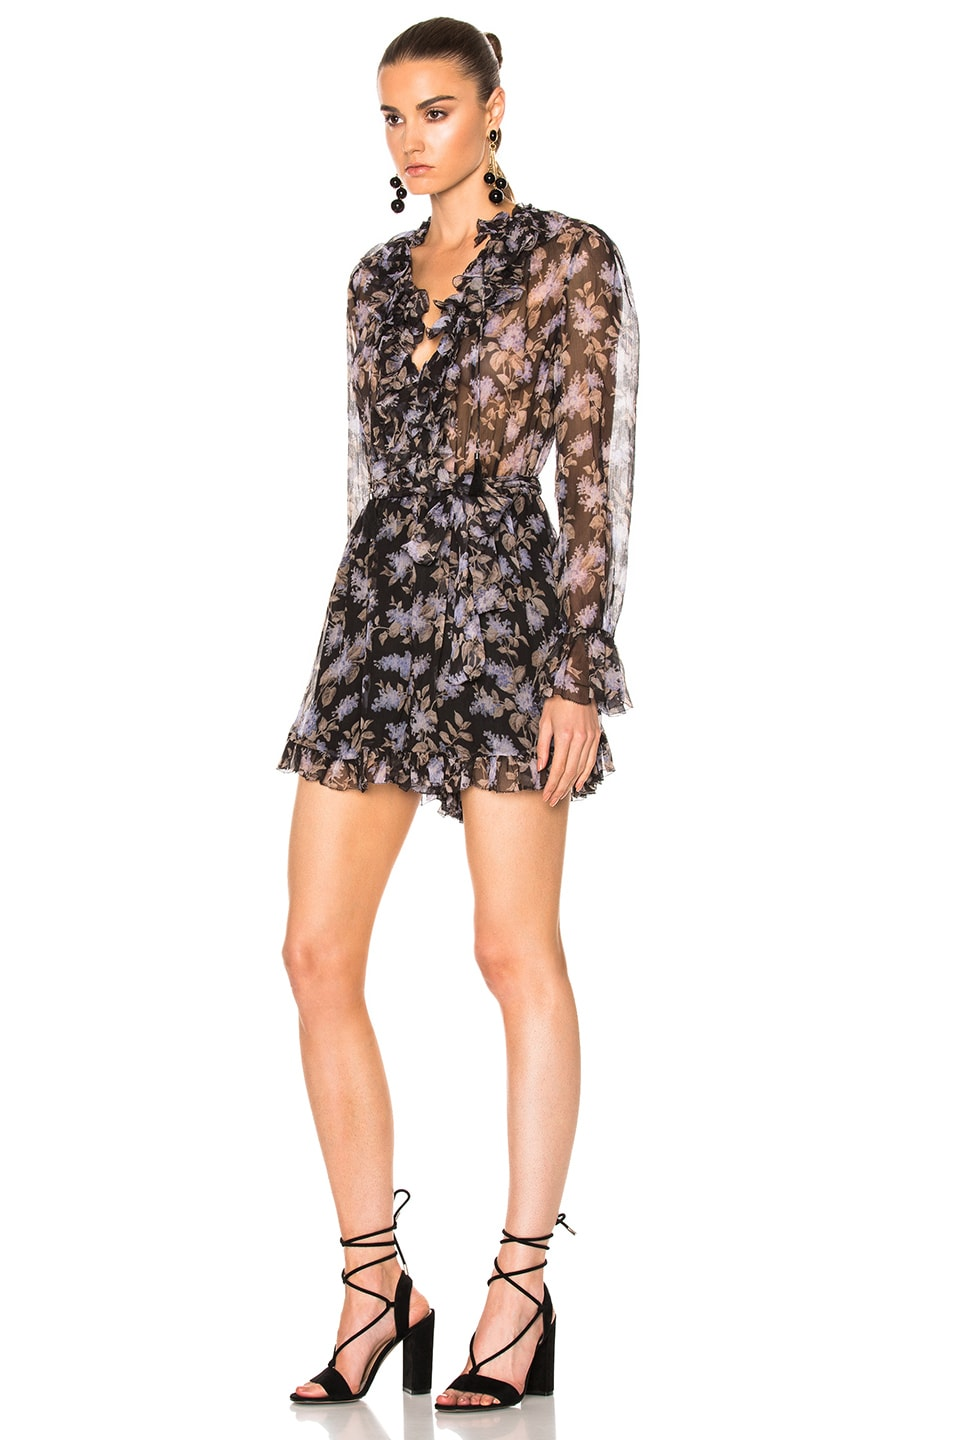 e84381de441 Image 2 of Zimmermann Stranded Ruffle Playsuit in Black Lavender Floral